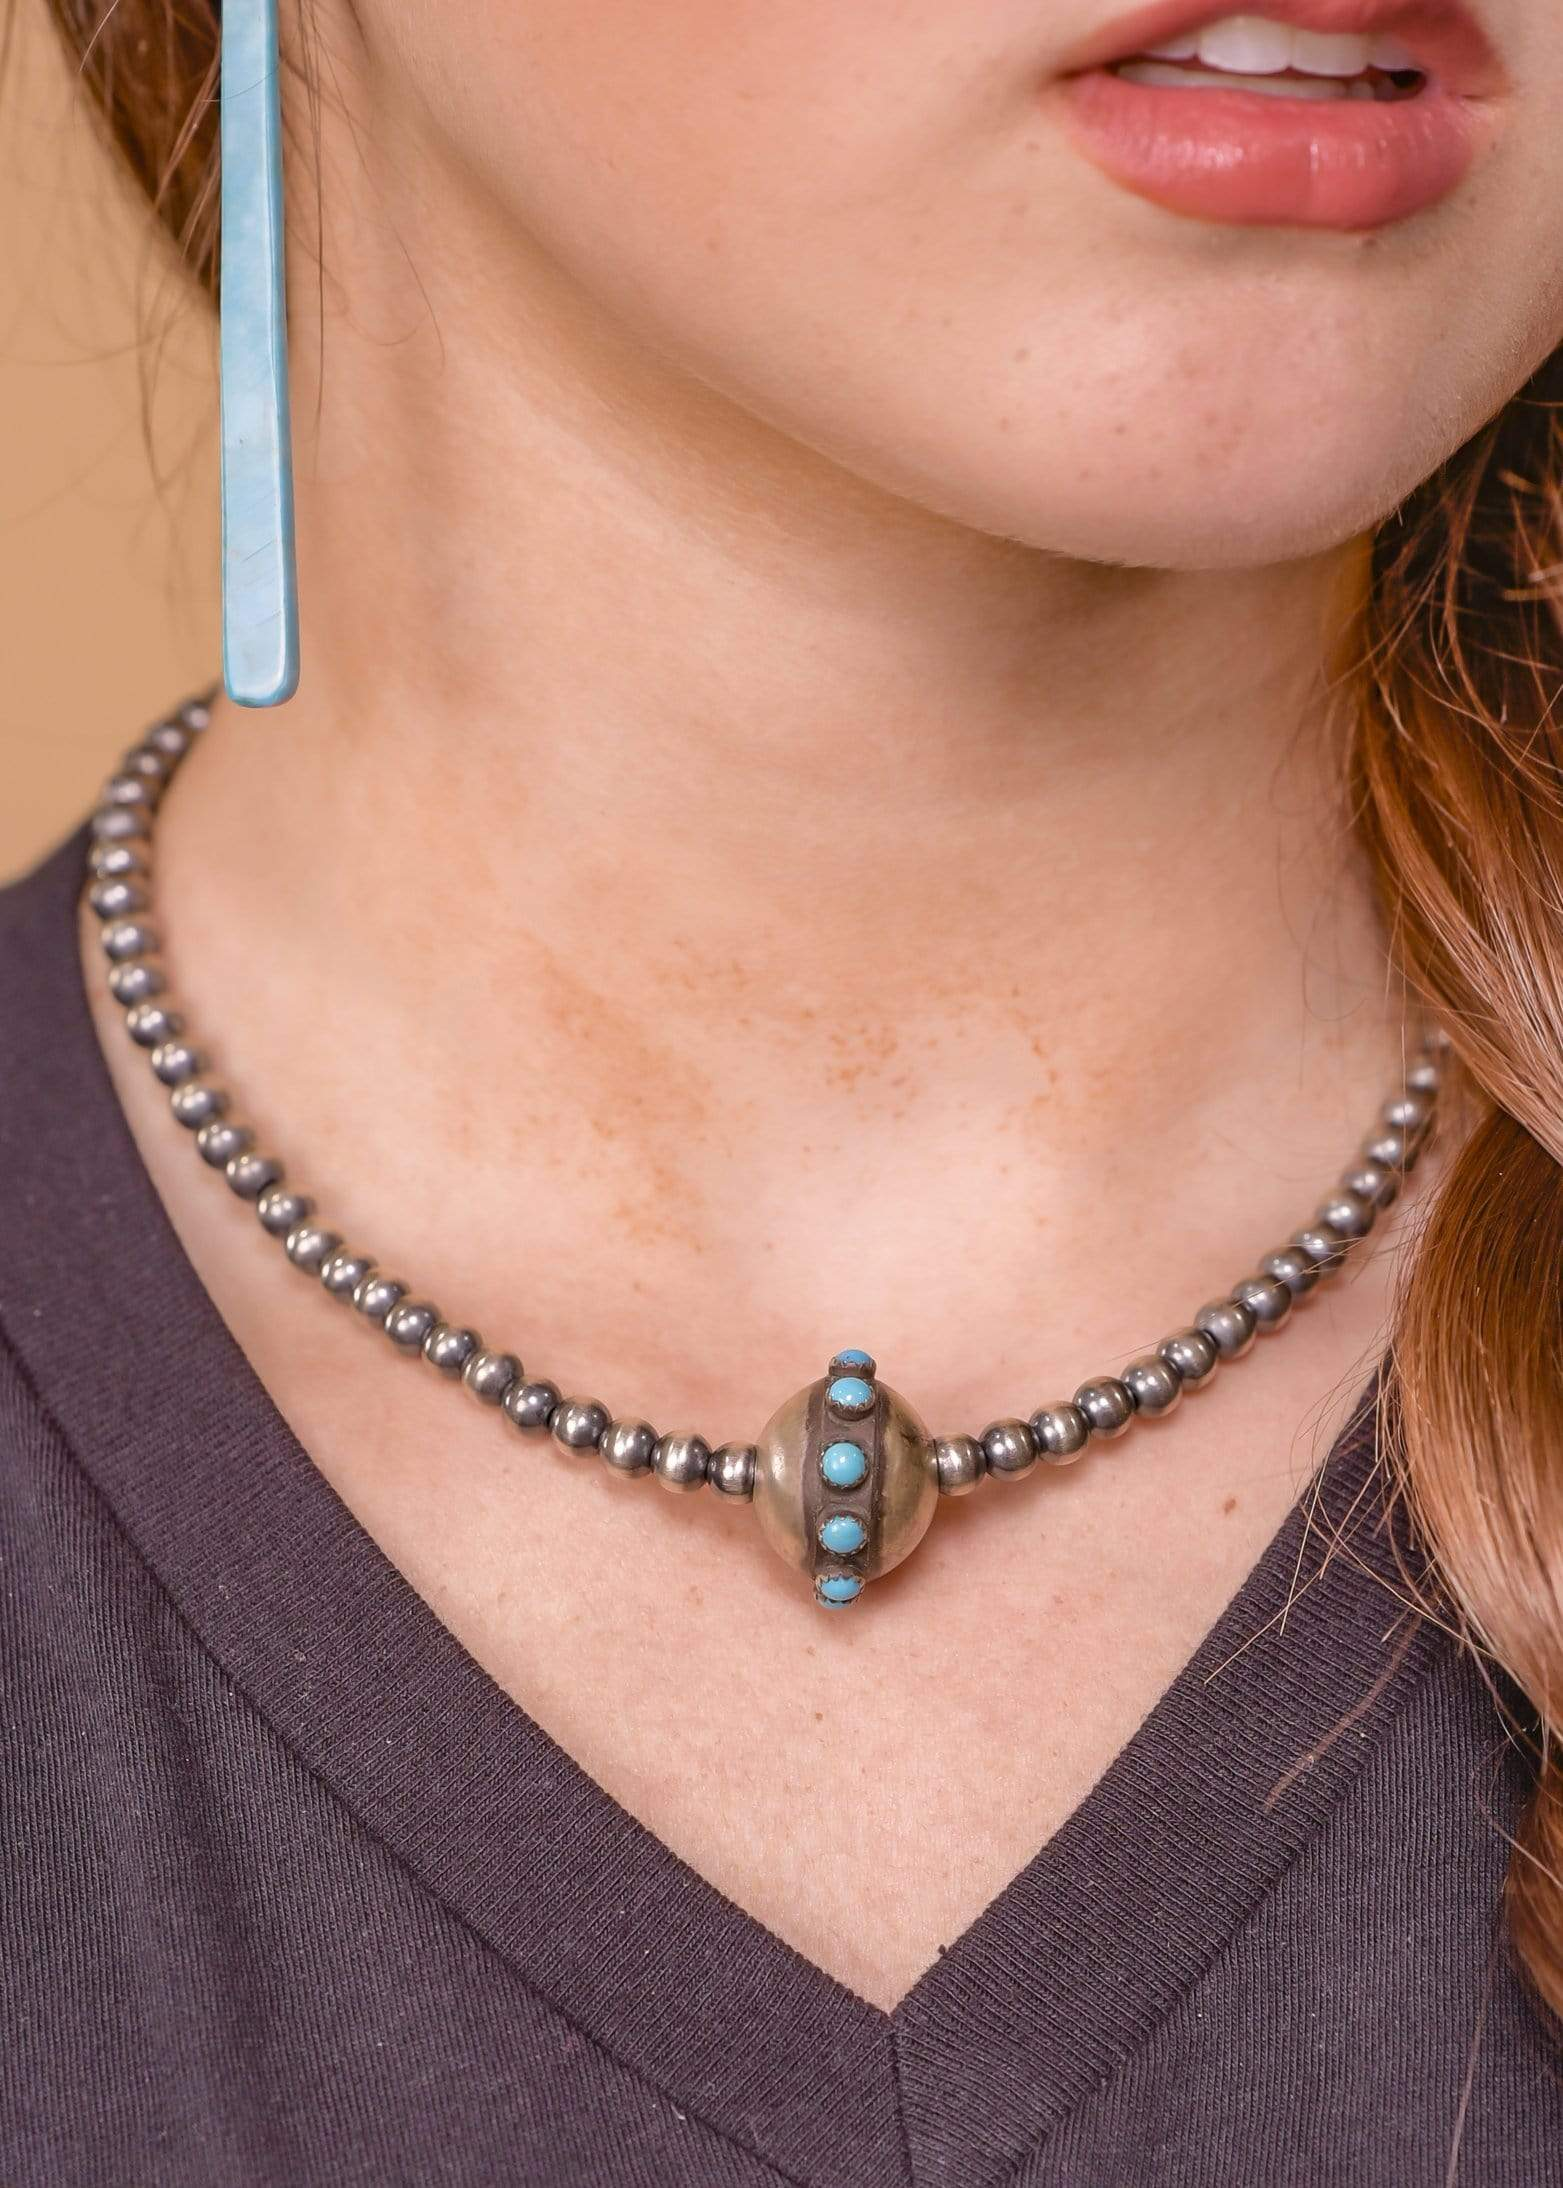 Accessorize In Style Sterling Necklaces 5mm Navajo Pearl Necklace With Turquoise Snake Eye Details - 16""